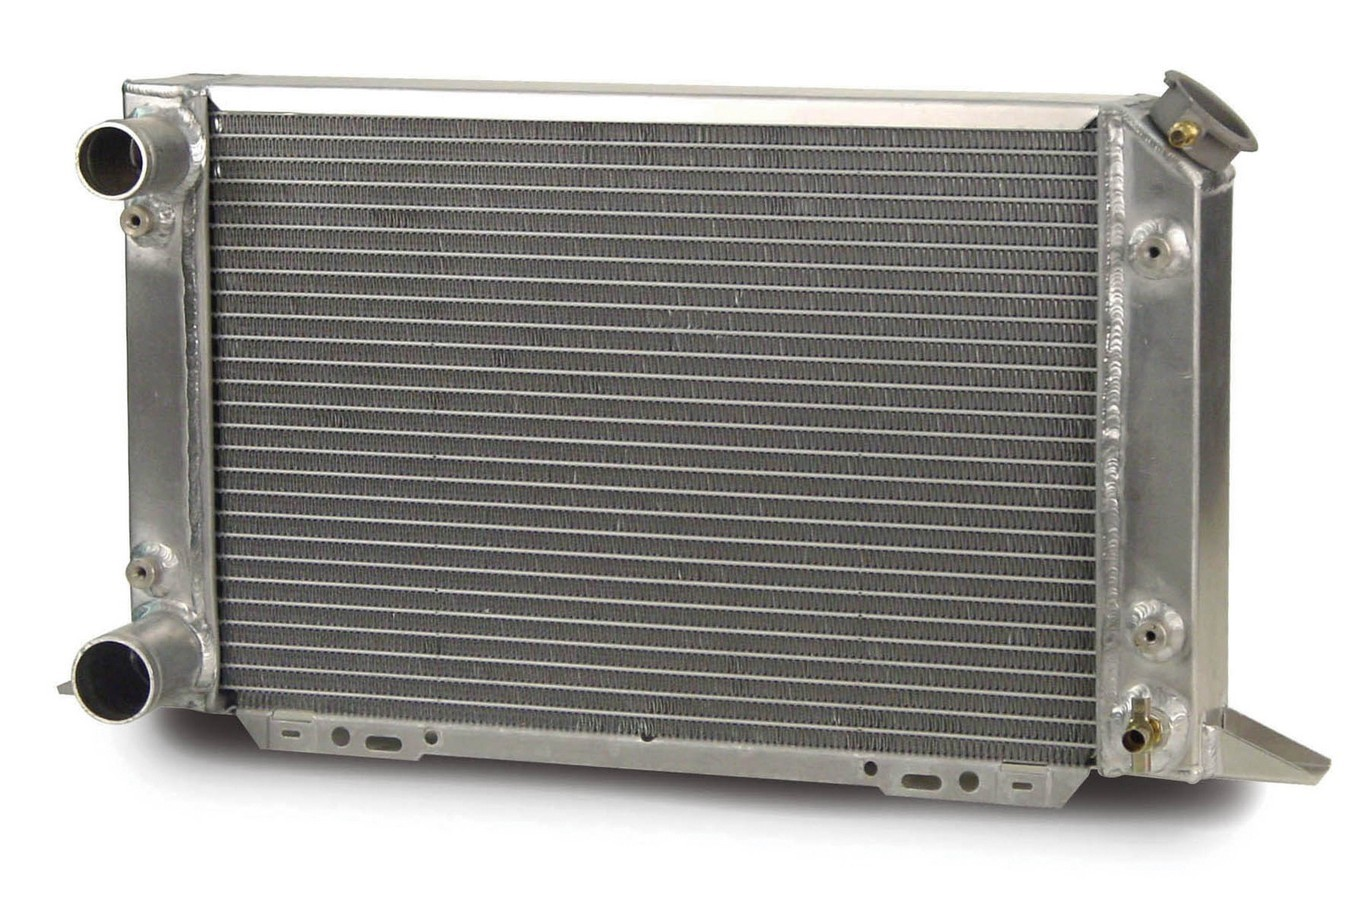 AFCO Racing Products 80105N Radiator, Scirocco, 21-1/2 in W x 12-5/8 in H x 3 in D, Driver Side Inlet, Driver Side Outlet, Aluminum, Natural, Each